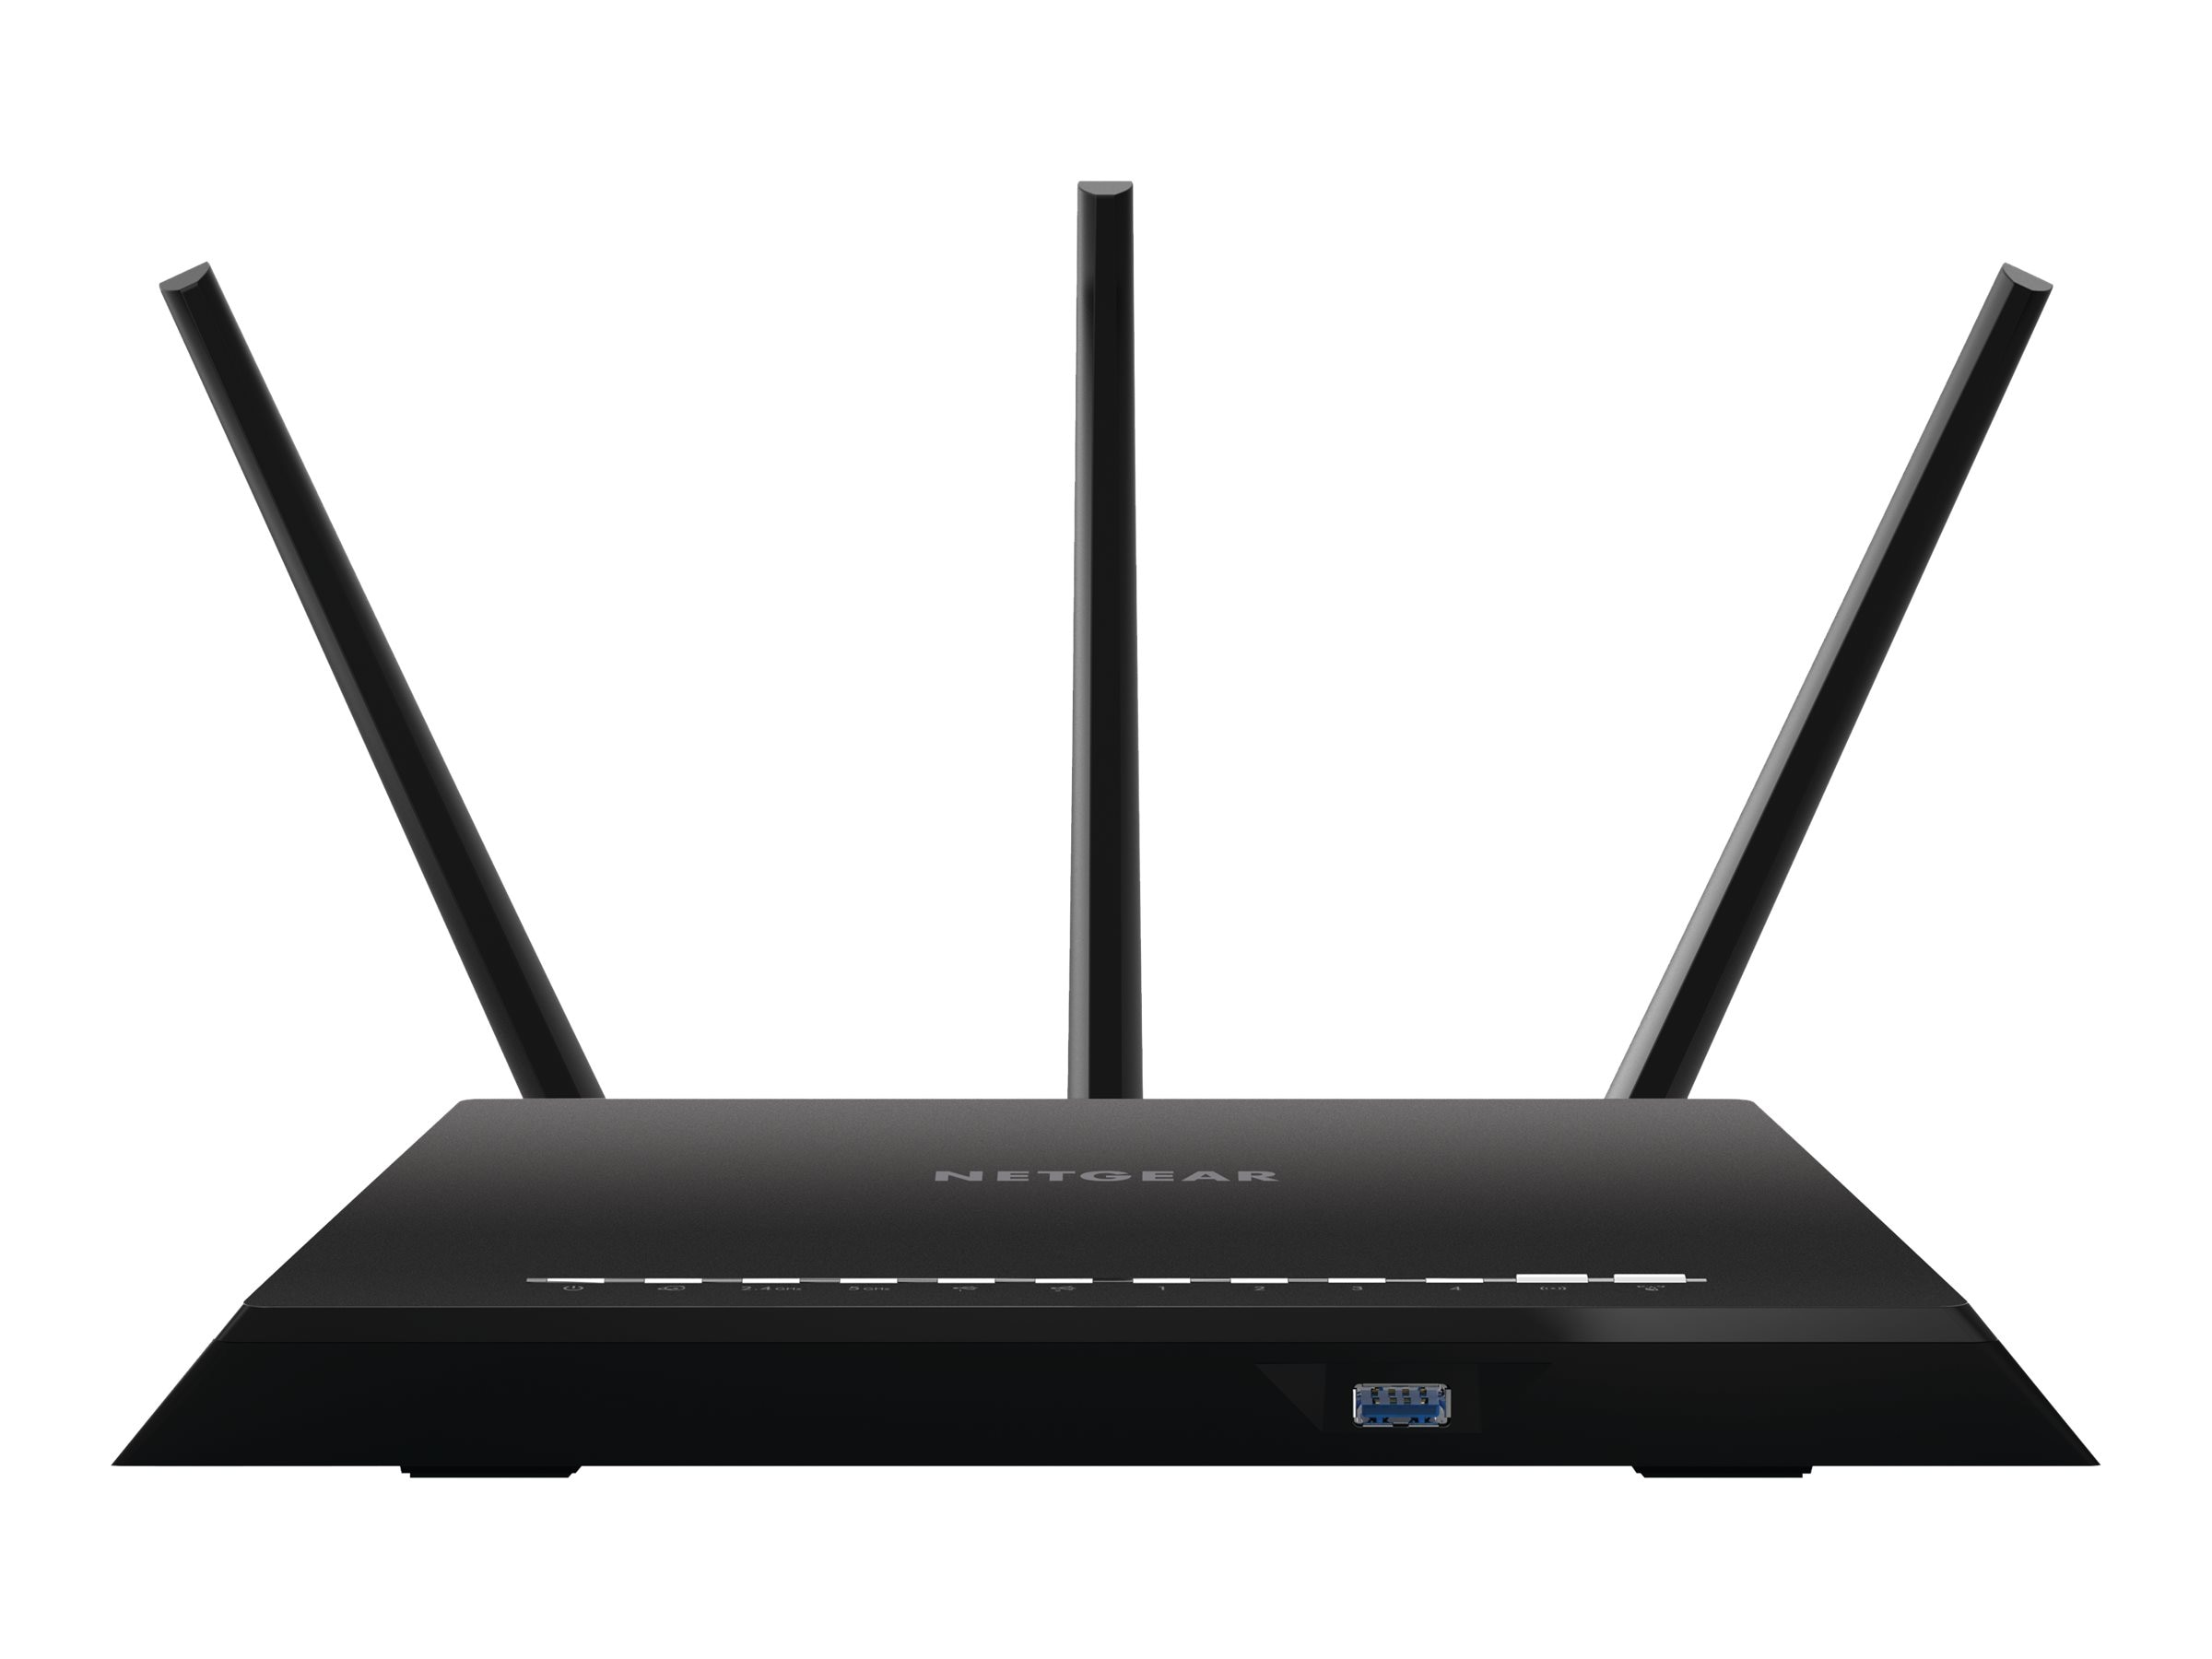 Netgear Nighthawk AC1900 Smart Wireless Router Dual GB, R7000-100PAS